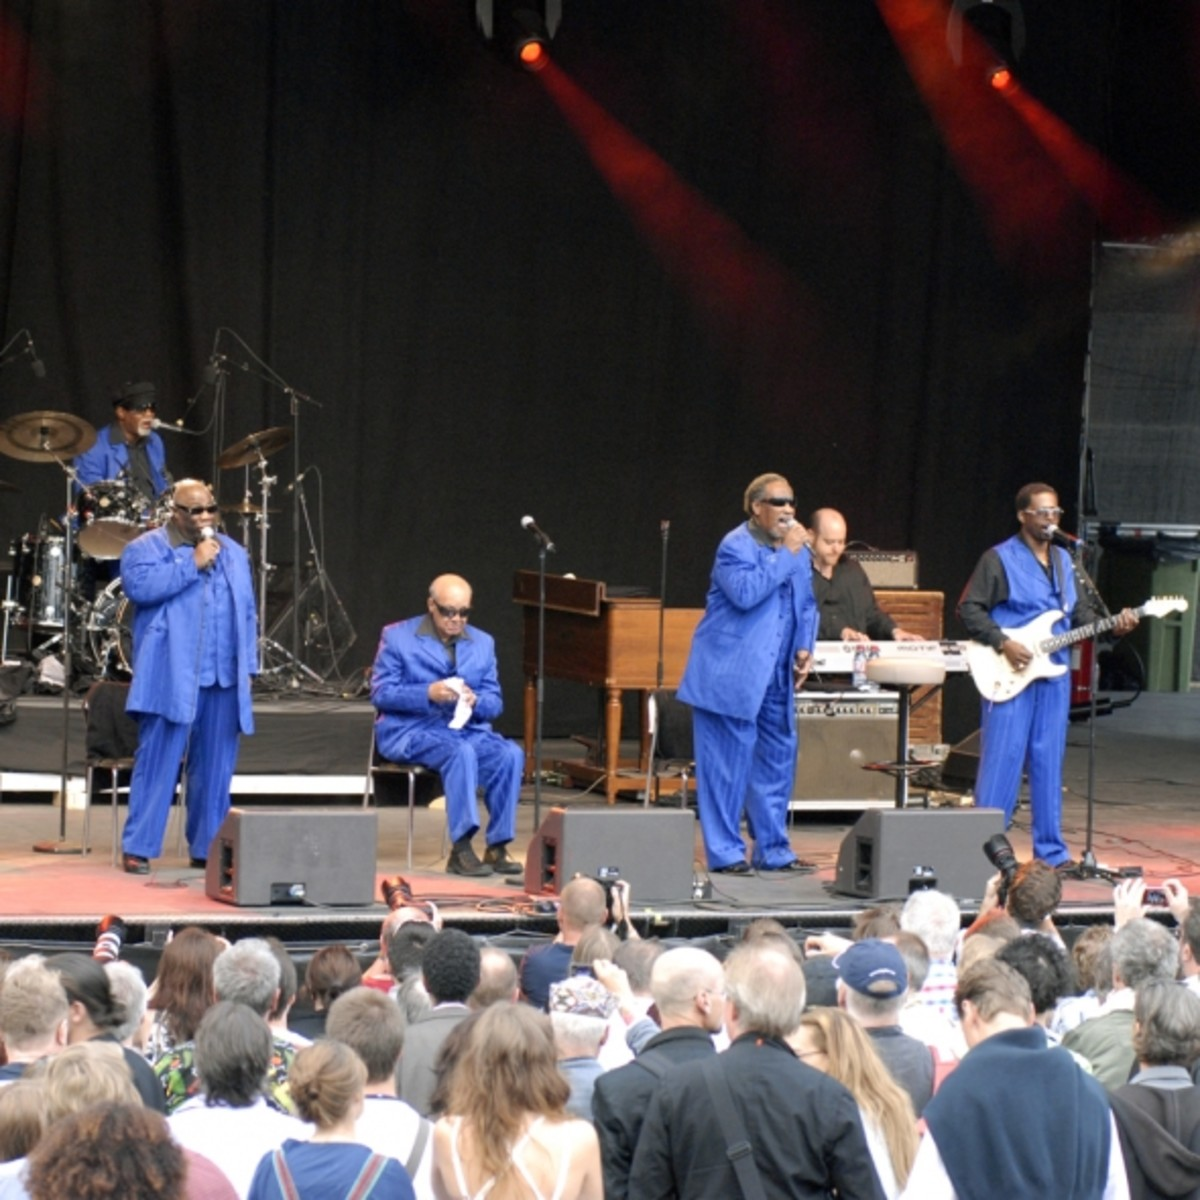 The Blind Boys of Alabama perform in Stockholm.  Shared on Wikimedia Commons by Kotoviski